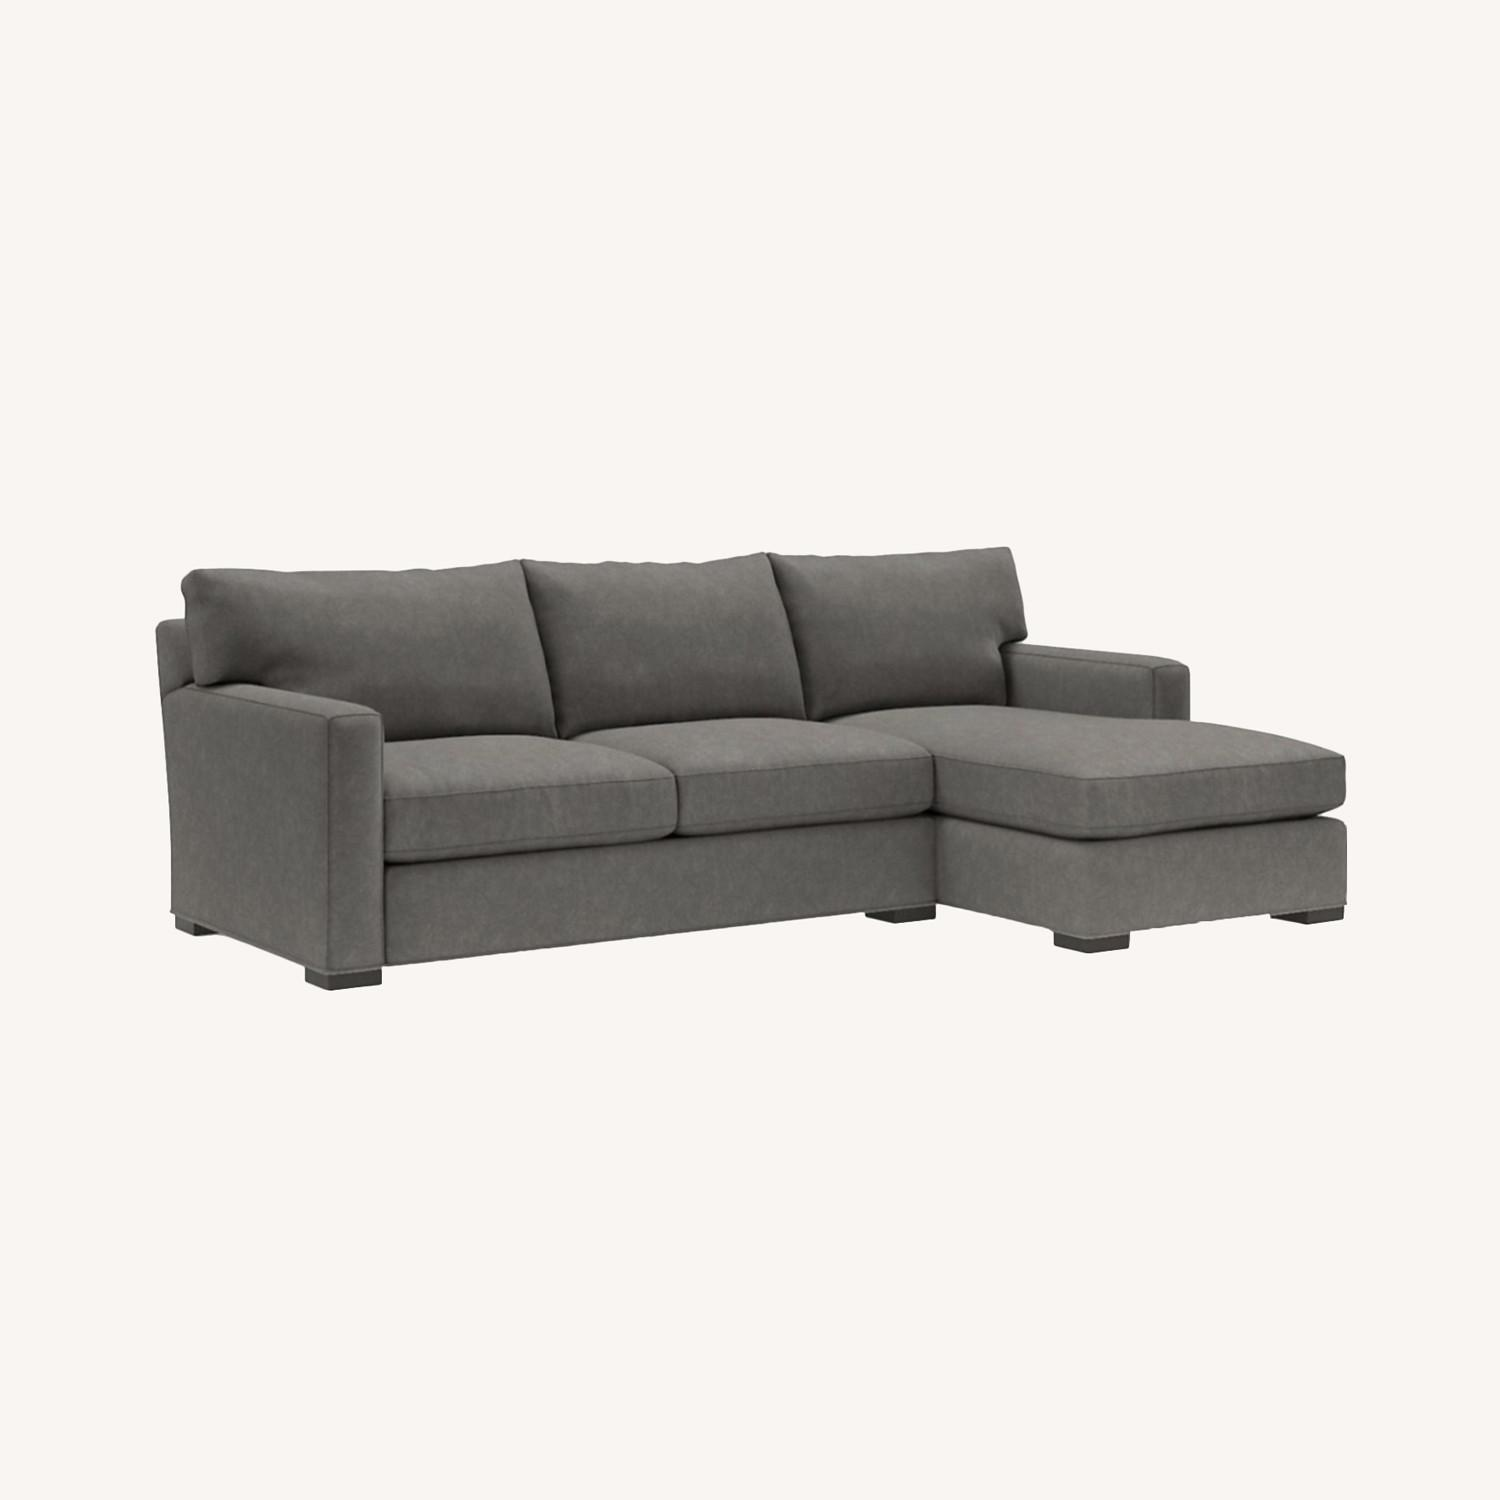 Crate & Barrel Couch - image-0